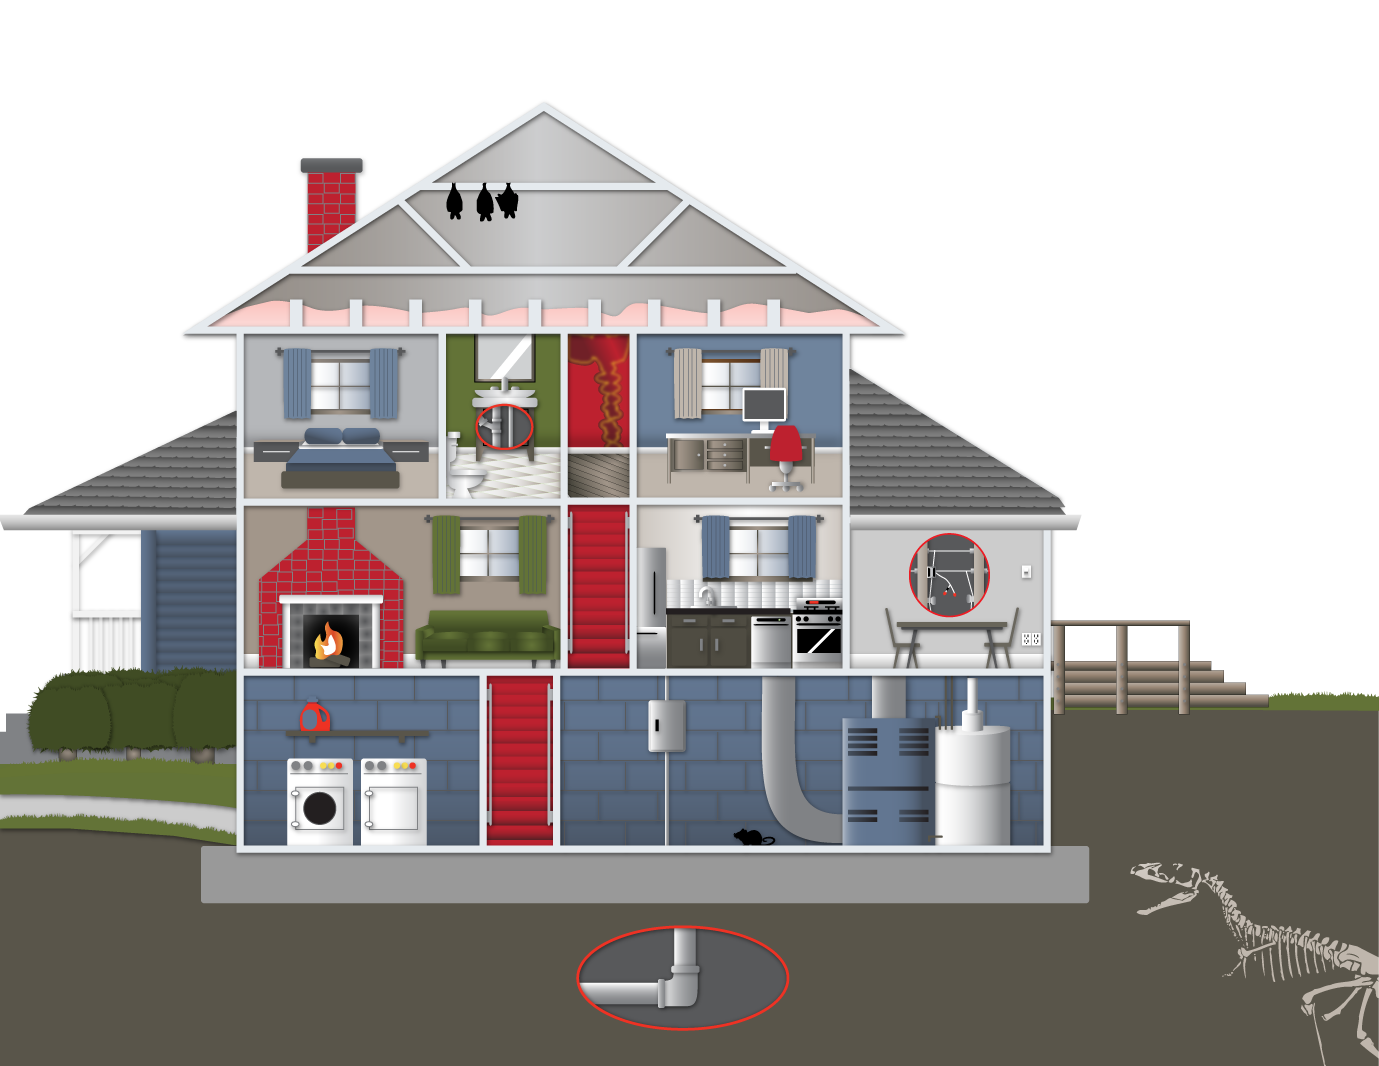 Your home inspection